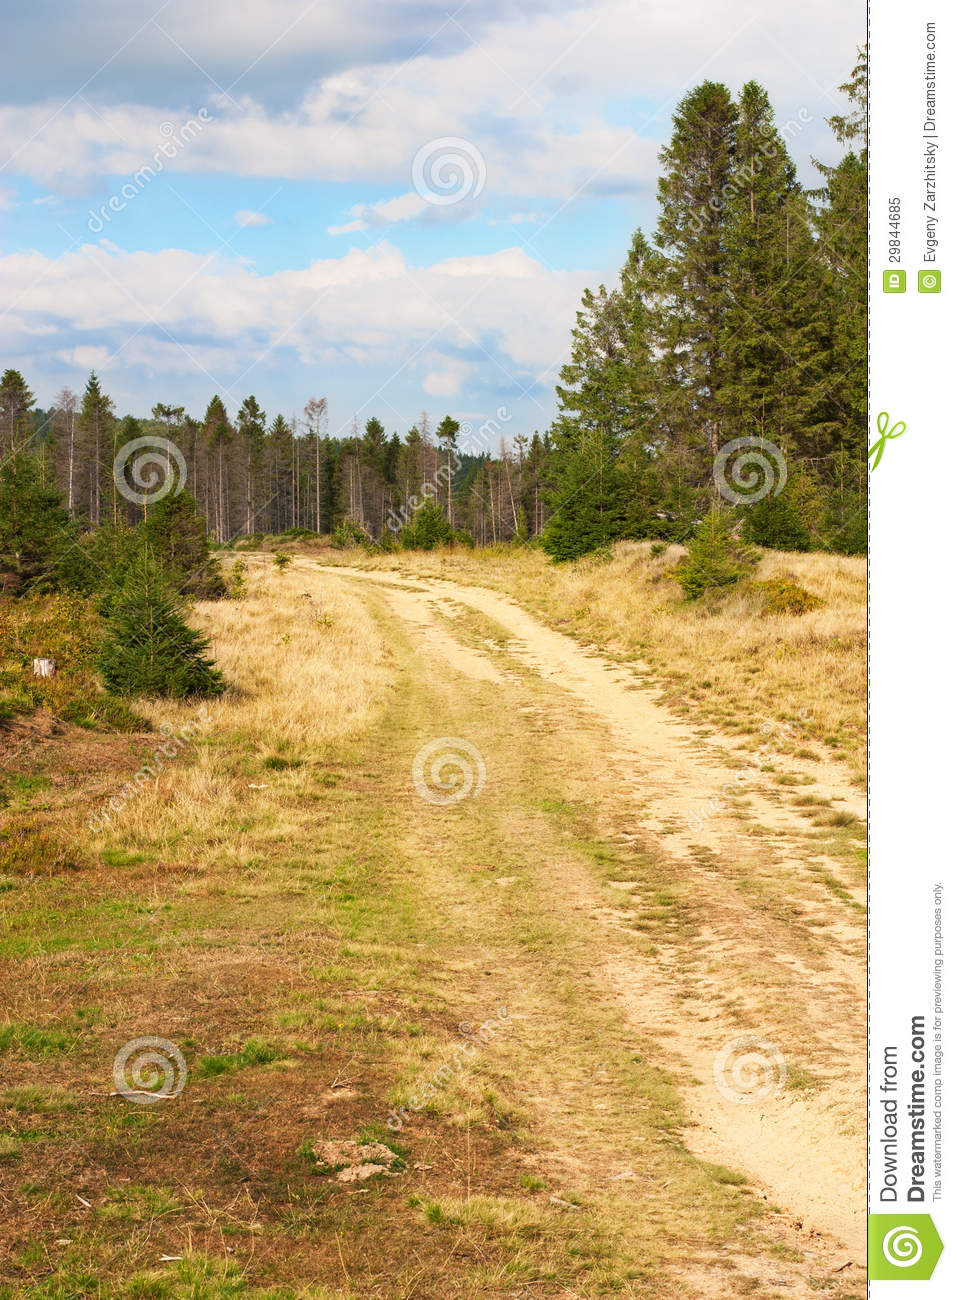 Road In The Mountains Royalty Free Stock Photo   Image  29844685